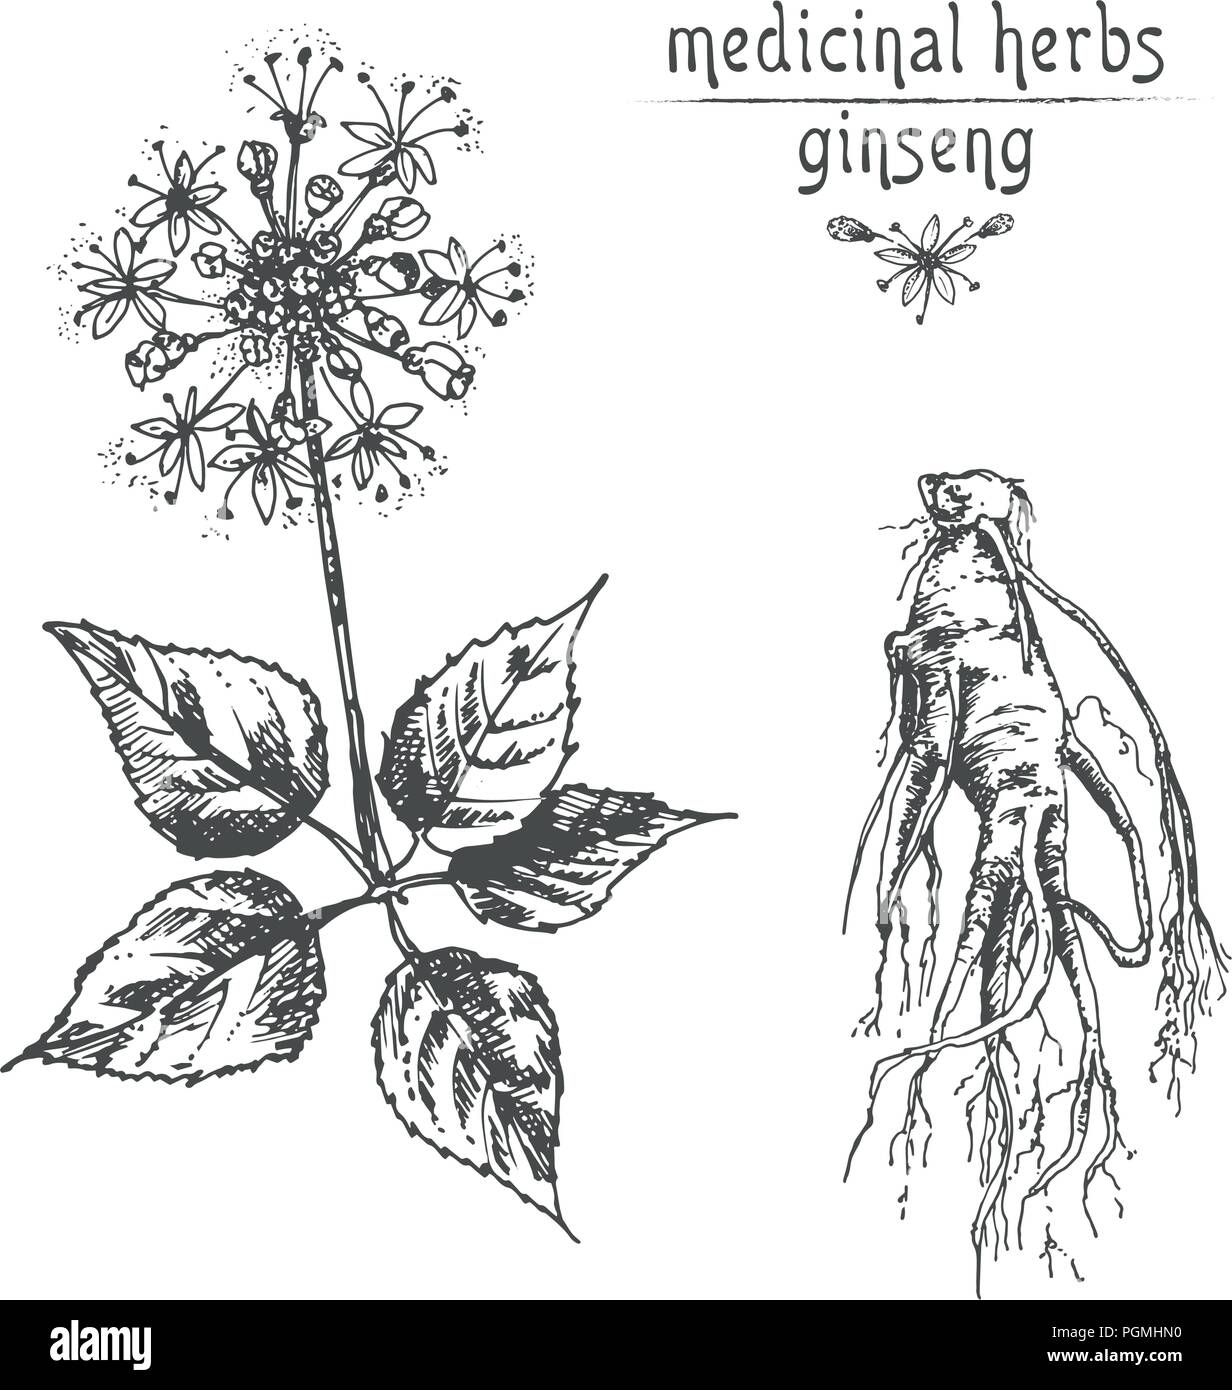 Realistic botanical ink sketch of ginseng root flowers and berries realistic botanical ink sketch of ginseng root flowers and berries isolated on white floral herbs collection traditional chinese medicine plant mightylinksfo